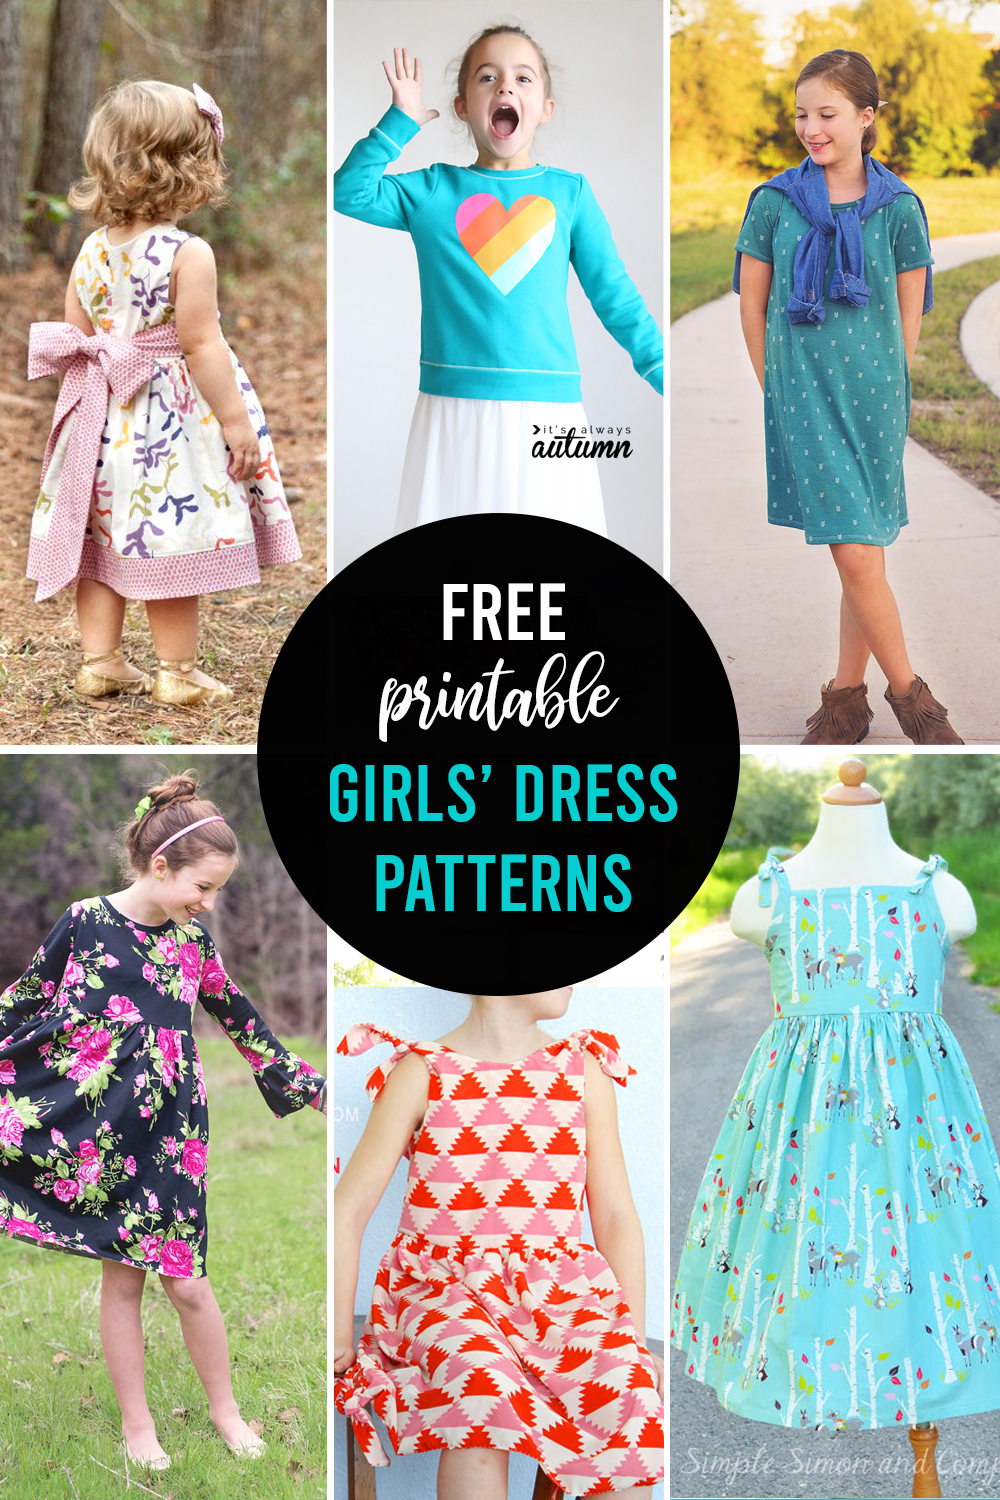 Free printable dress patterns for girls in multiple sizes.